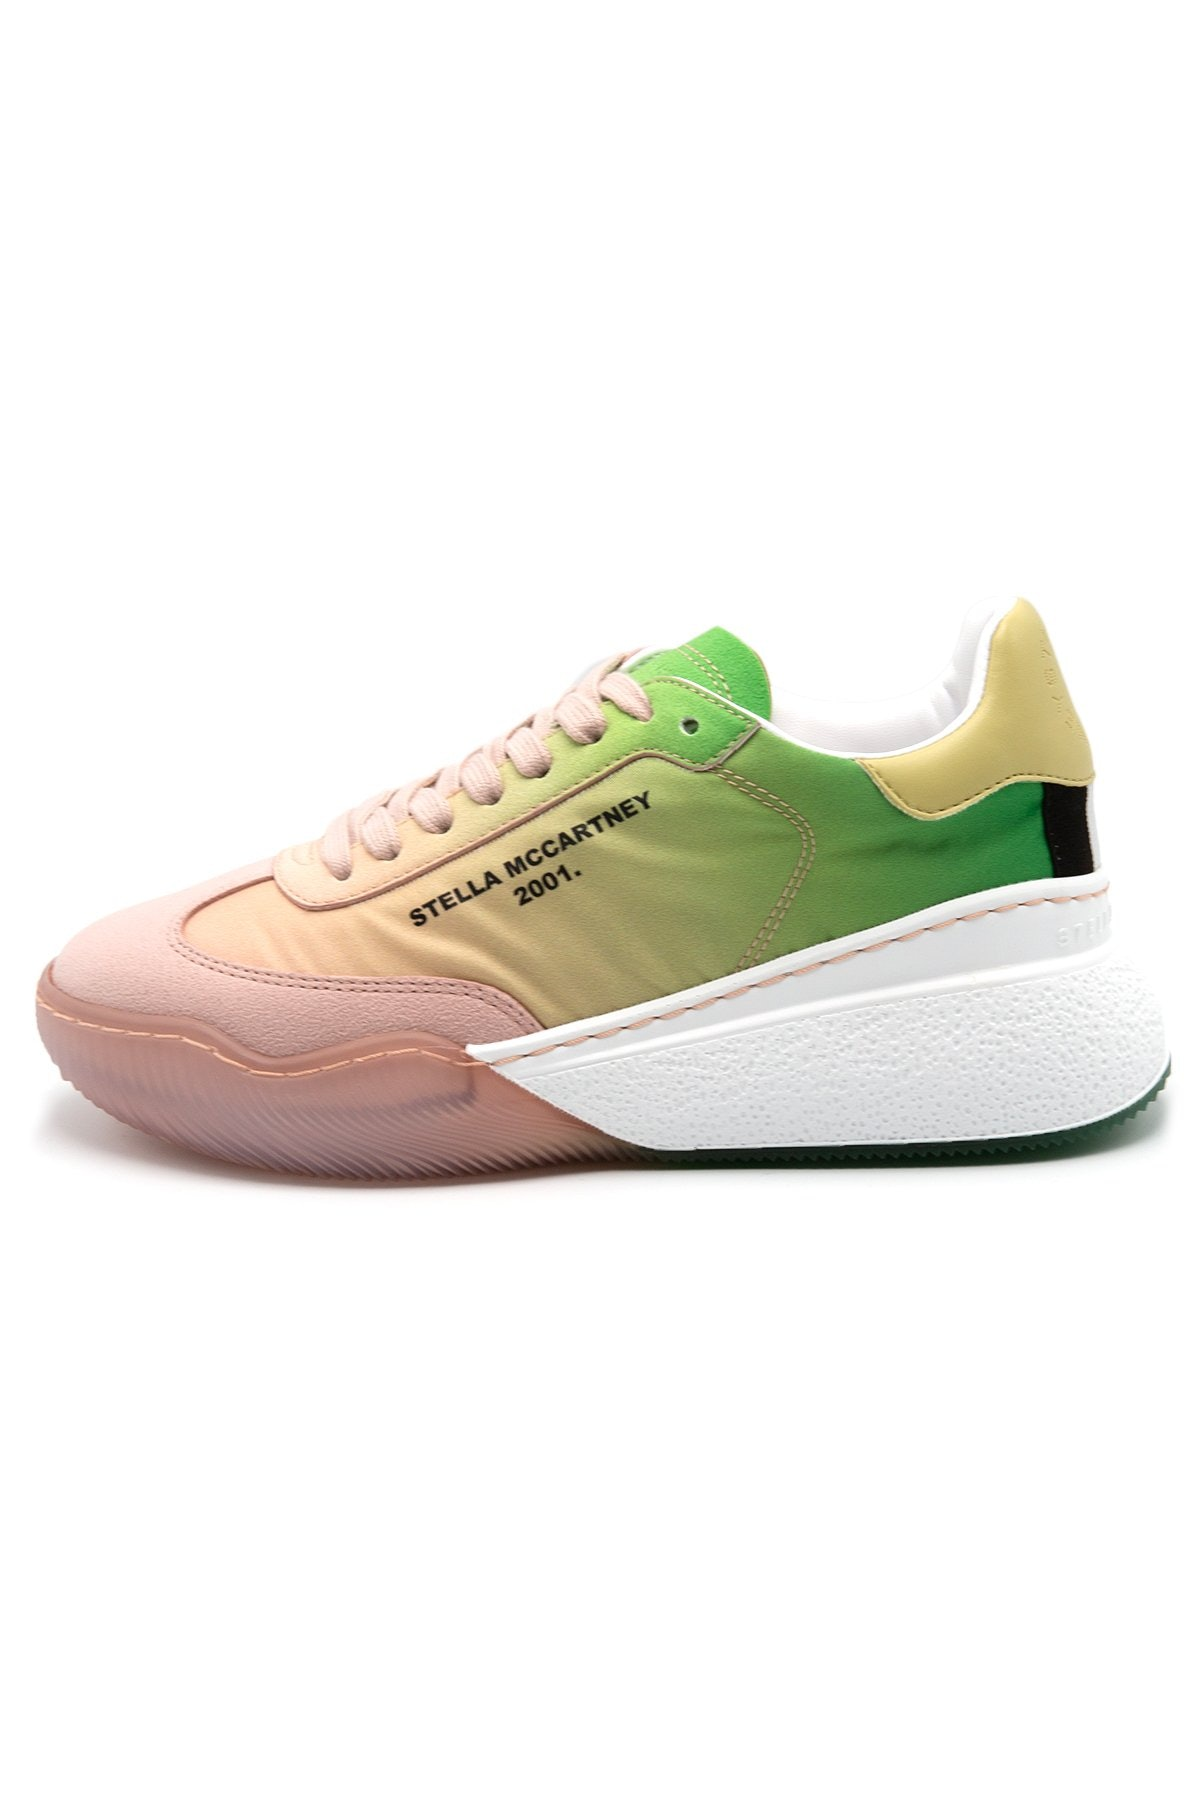 Loop Recycled Polyester Sneaker in Peach Degrade: image 1